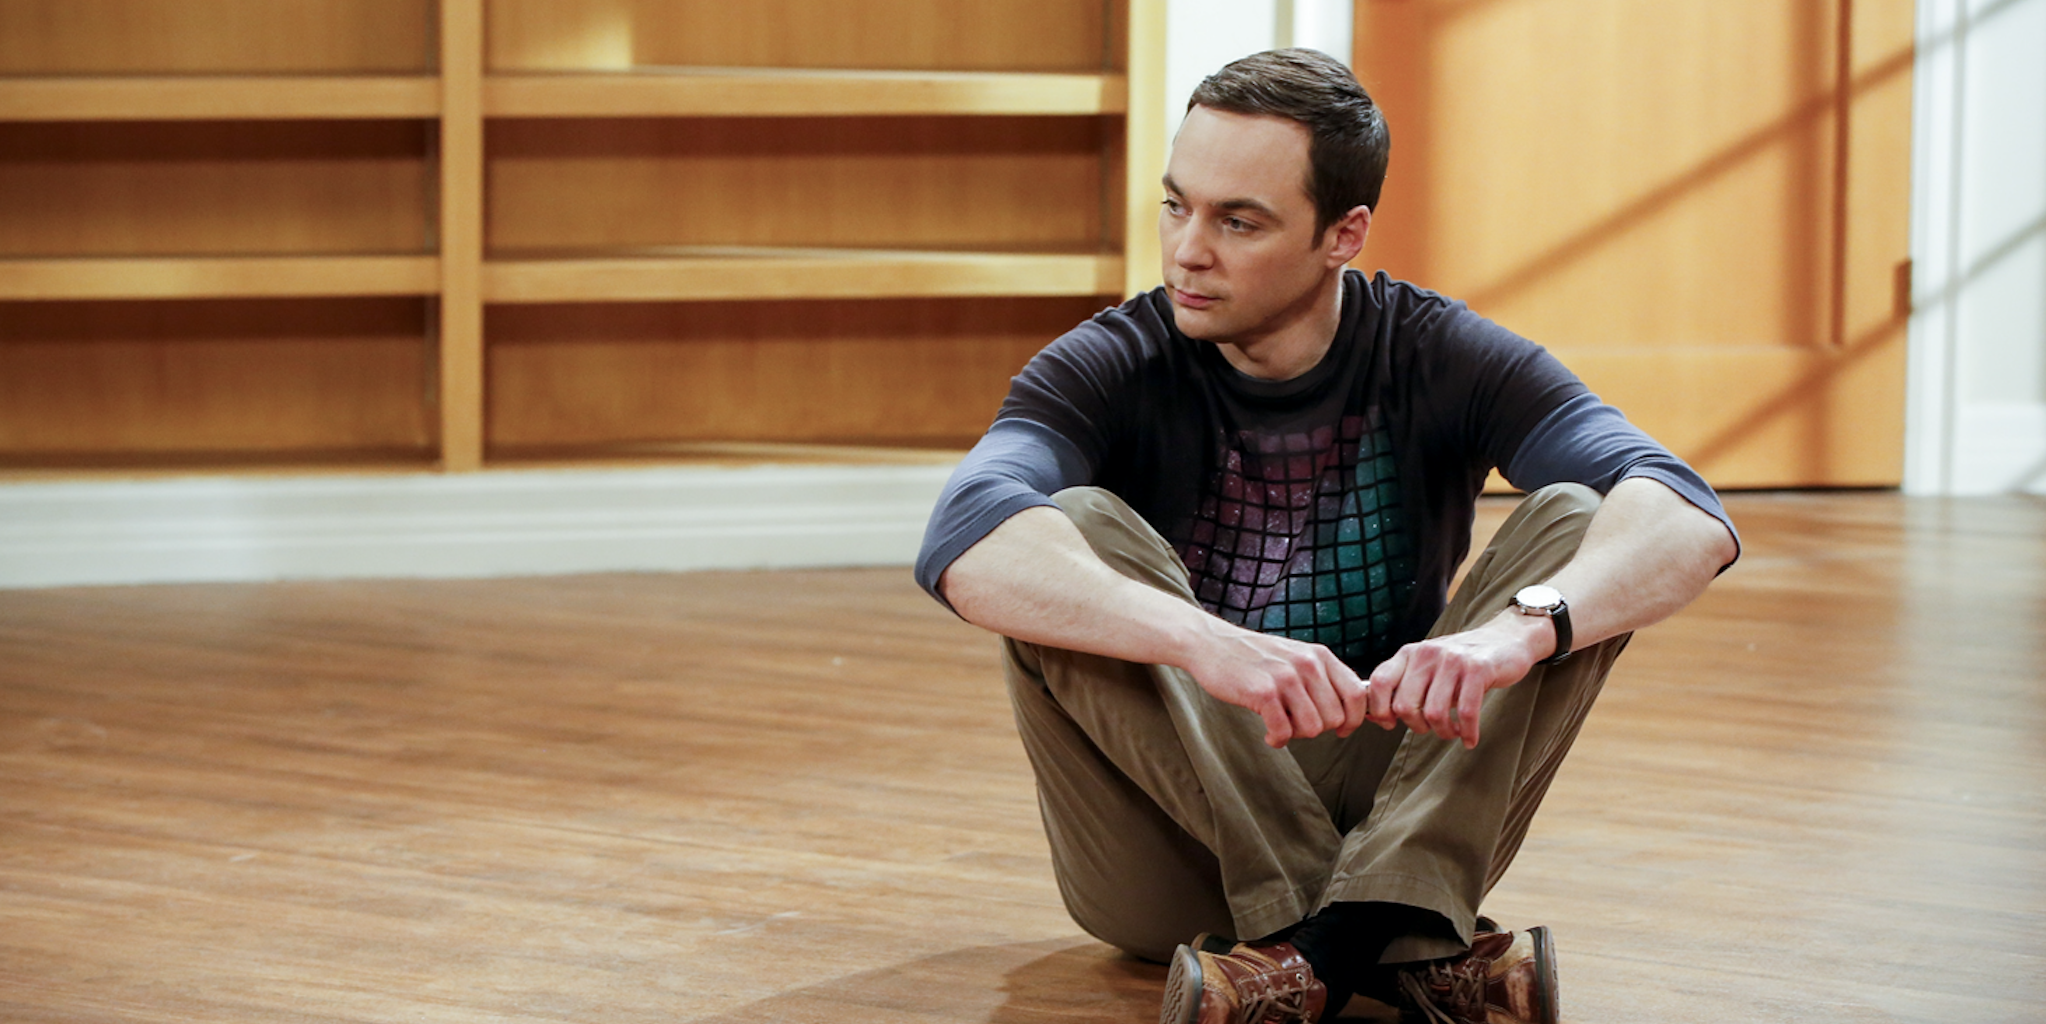 The Big Bang Theory: Sheldon Cooper (Jim Parsons). After Leonard, Sheldon and Wolowitz celebrate the completion of the top secret air force project,